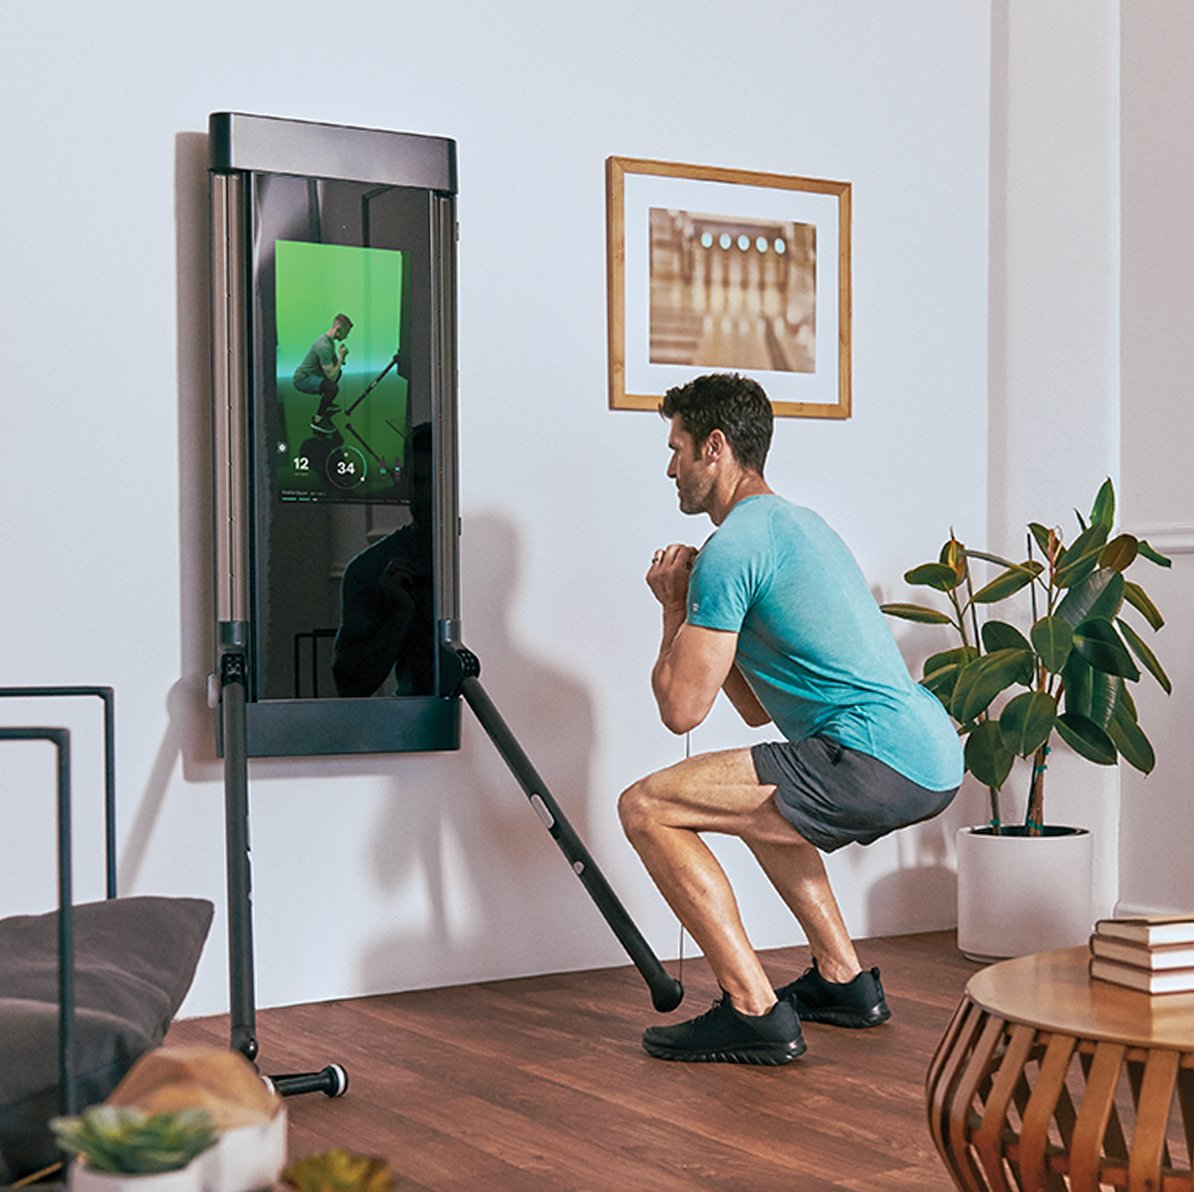 By eliminating traditional metal weights, Tonal can deliver 200 pounds of resistance in a device smaller than a flat screen TV. Powered by industry-shattering AI, Tonal's Digital Weight is the future of fitness.